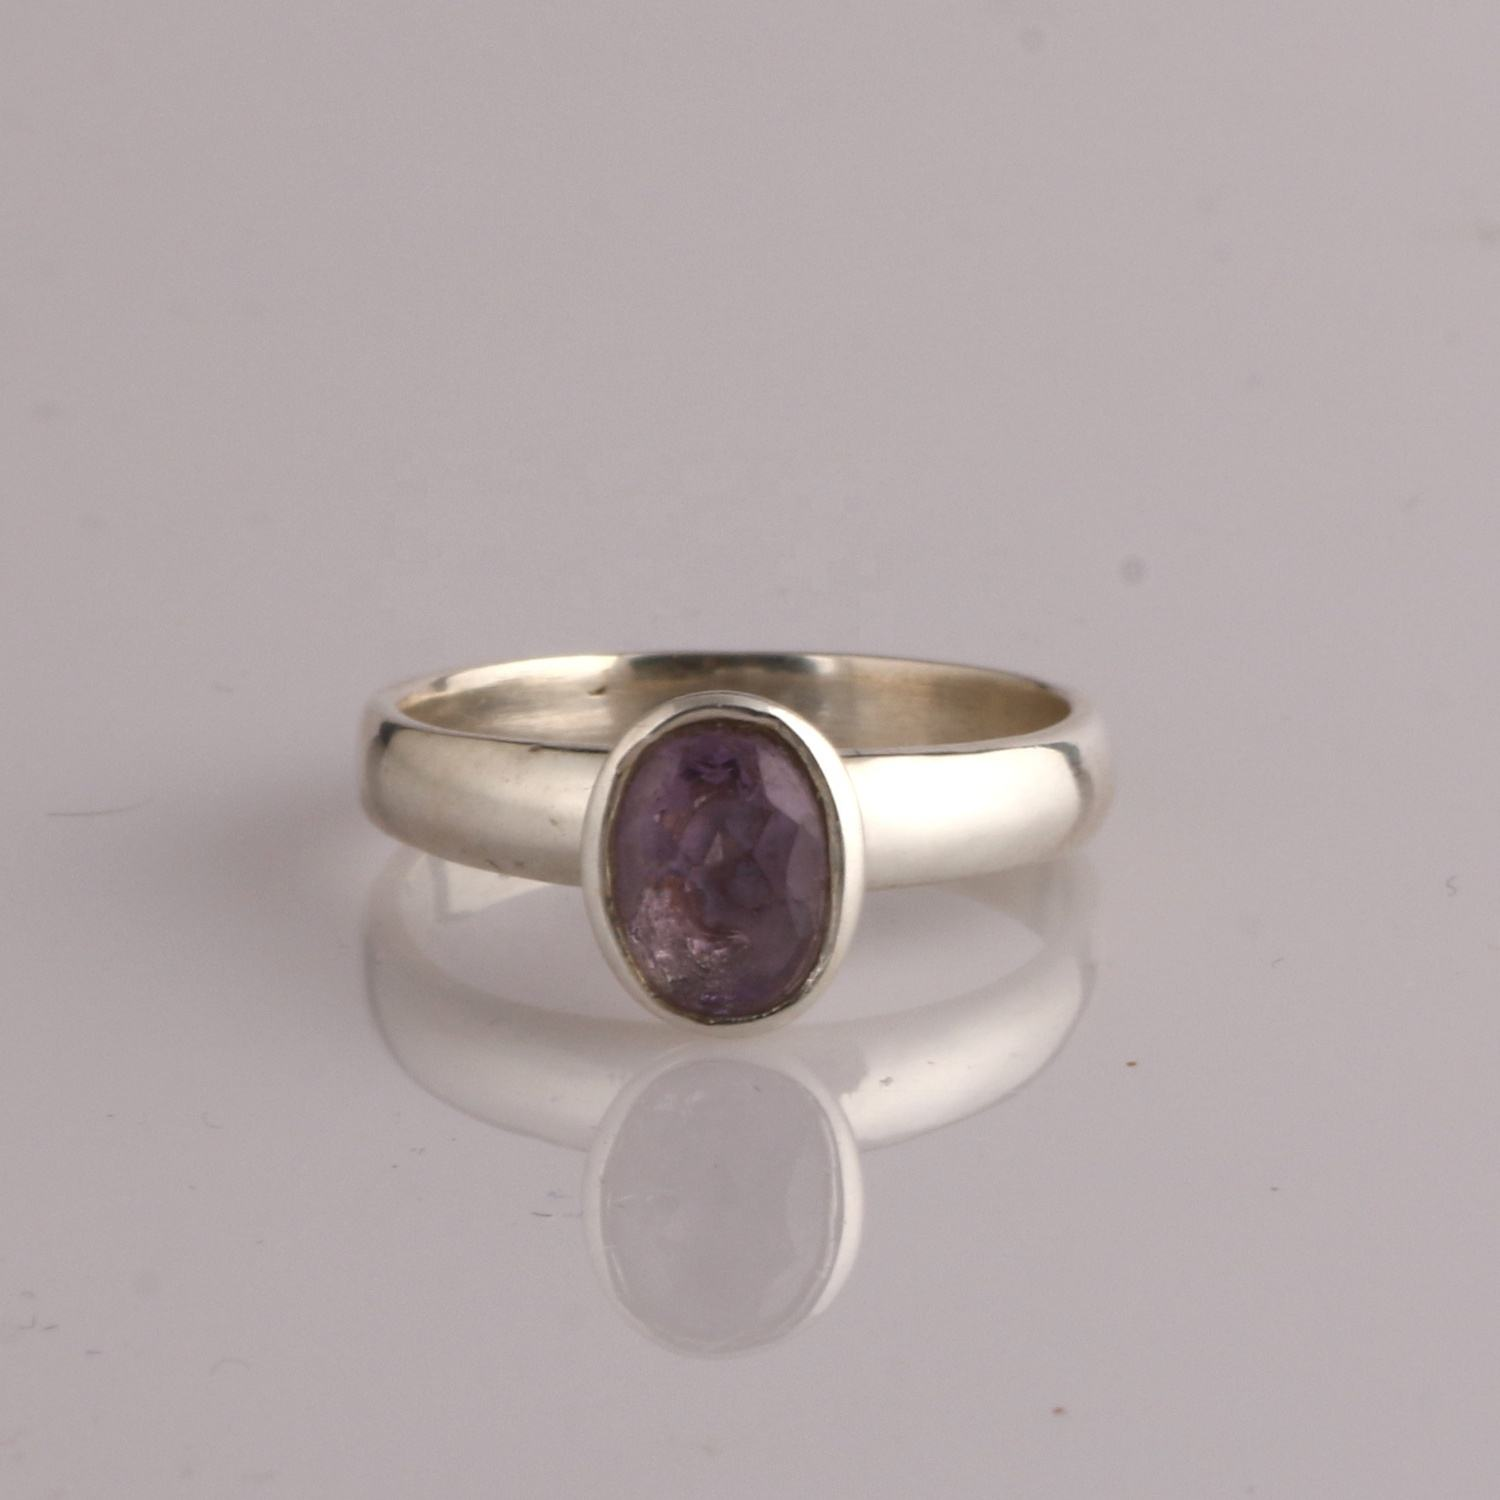 high quality 925 pure silver jewelry oval shape solitaire purple color amethyst gemstone ring for women